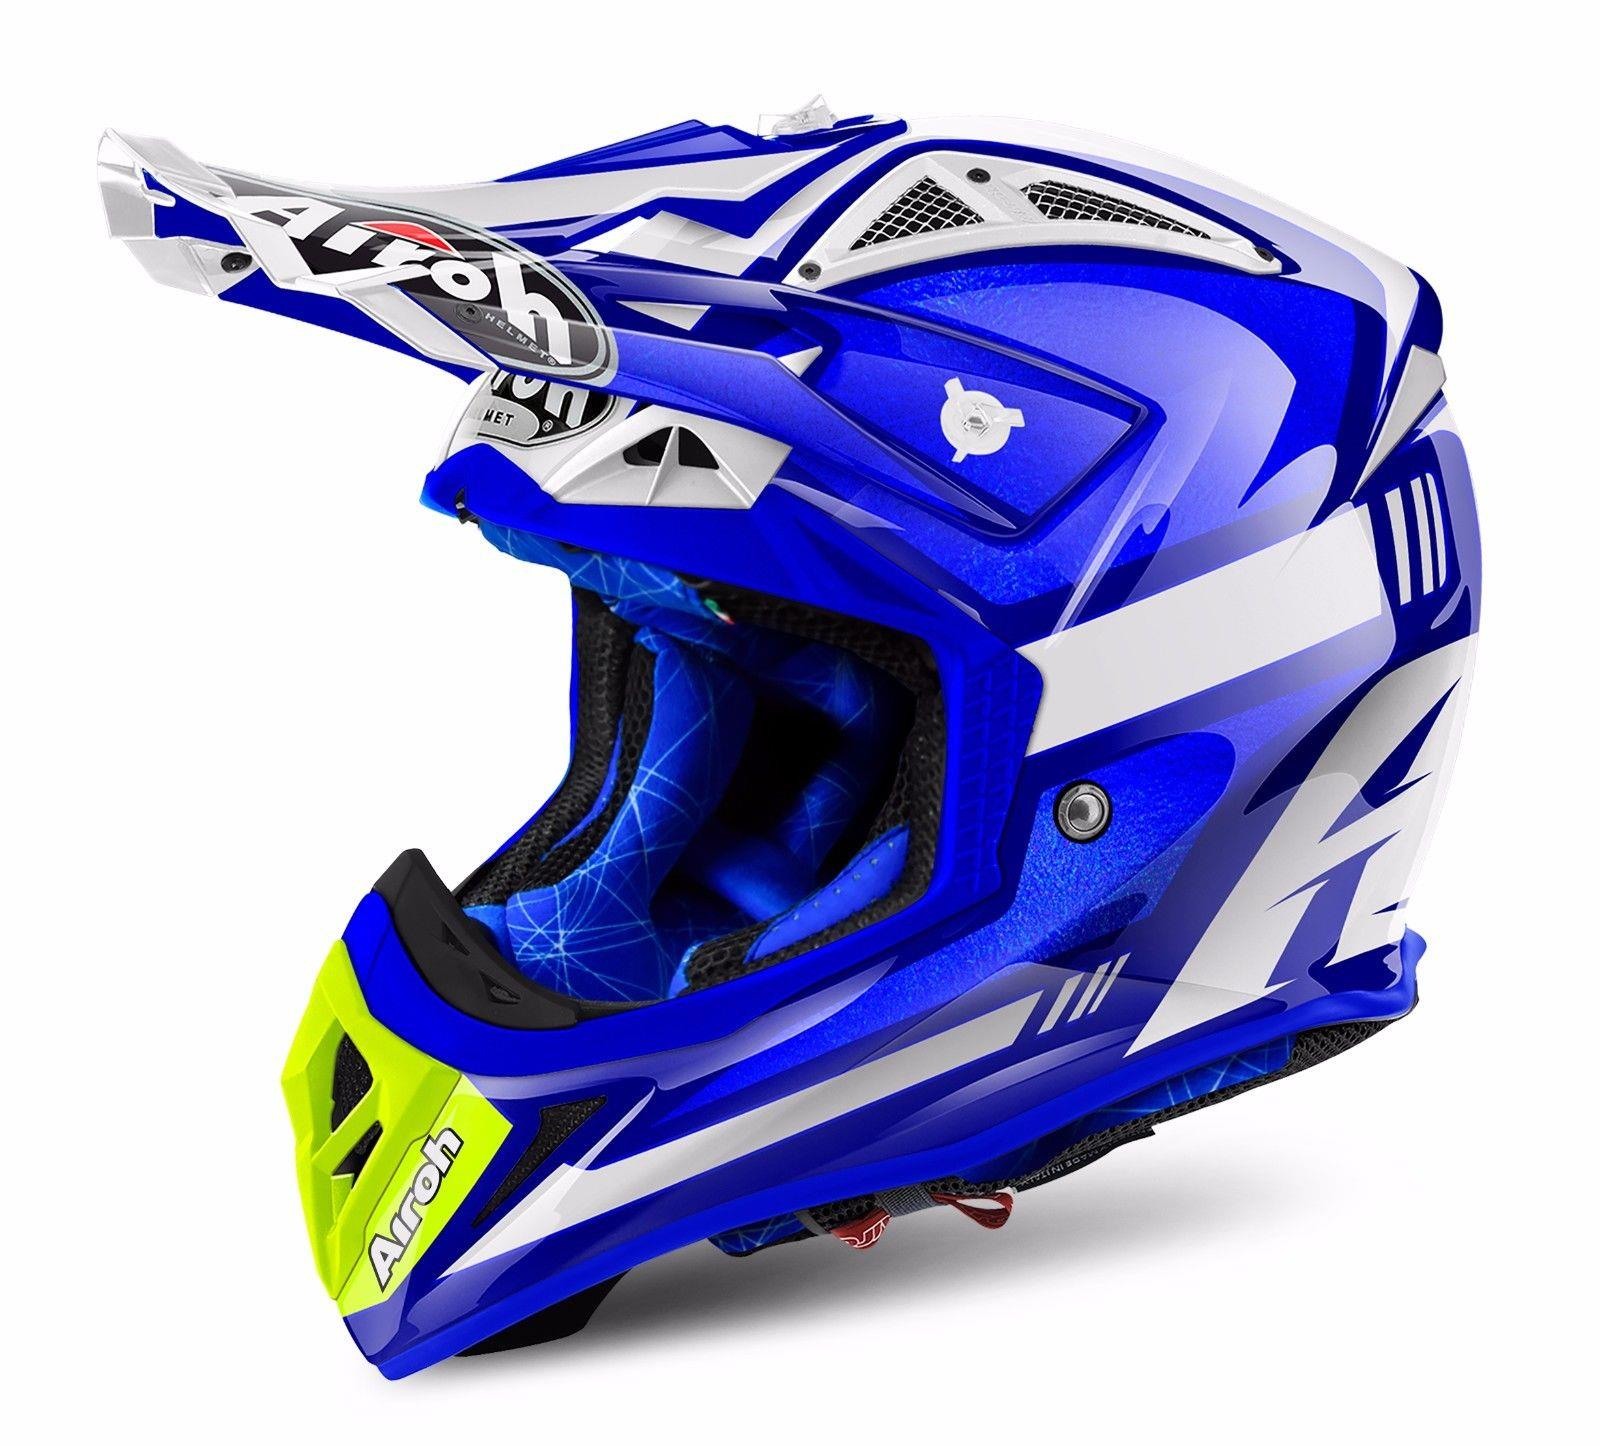 airoh aviator 2 2 cairoli ottabiano blue motocross mx helmet matt gardiner motocross. Black Bedroom Furniture Sets. Home Design Ideas